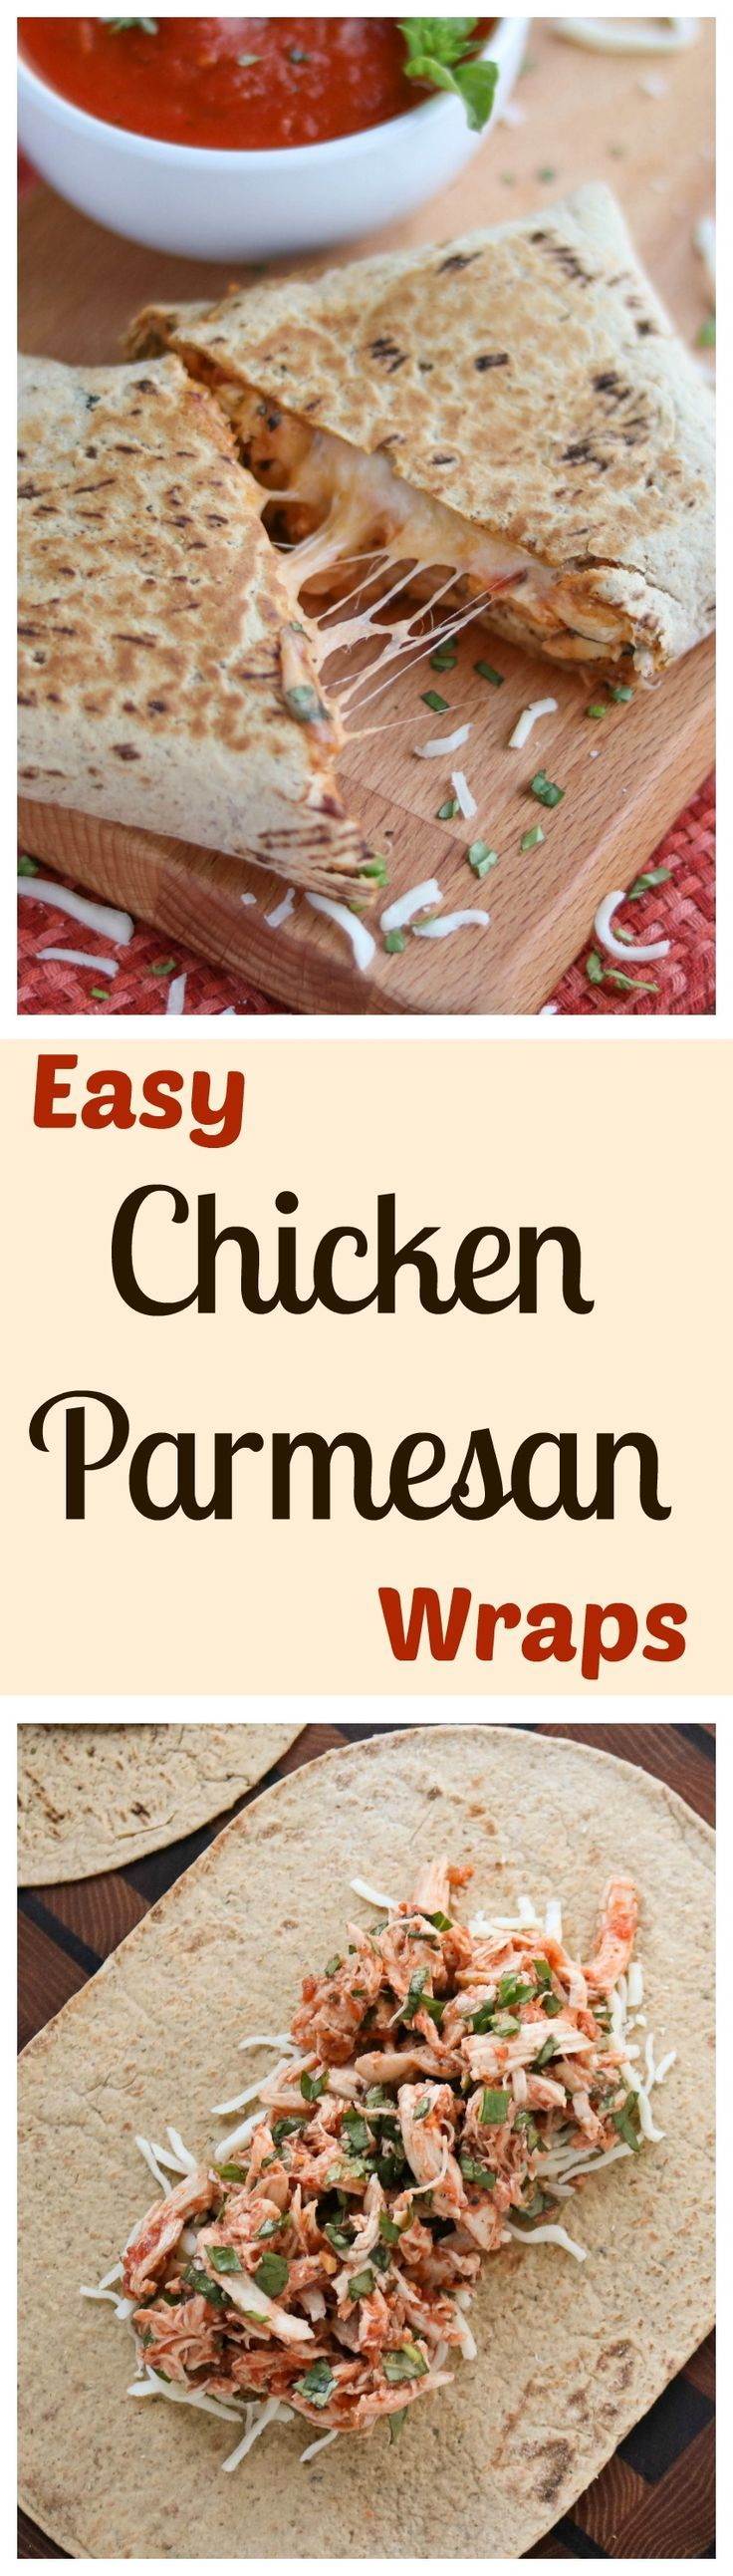 These Easy Chicken Parmesan Wraps are a super-fast, 15-minute meal! Make them ahead - they're portable and freezable, too! All the cheesy, saucy, comforting flavors of your favorite chicken parmesan casserole … yet so quick and simple! AD | www.TwoHealthyKit...